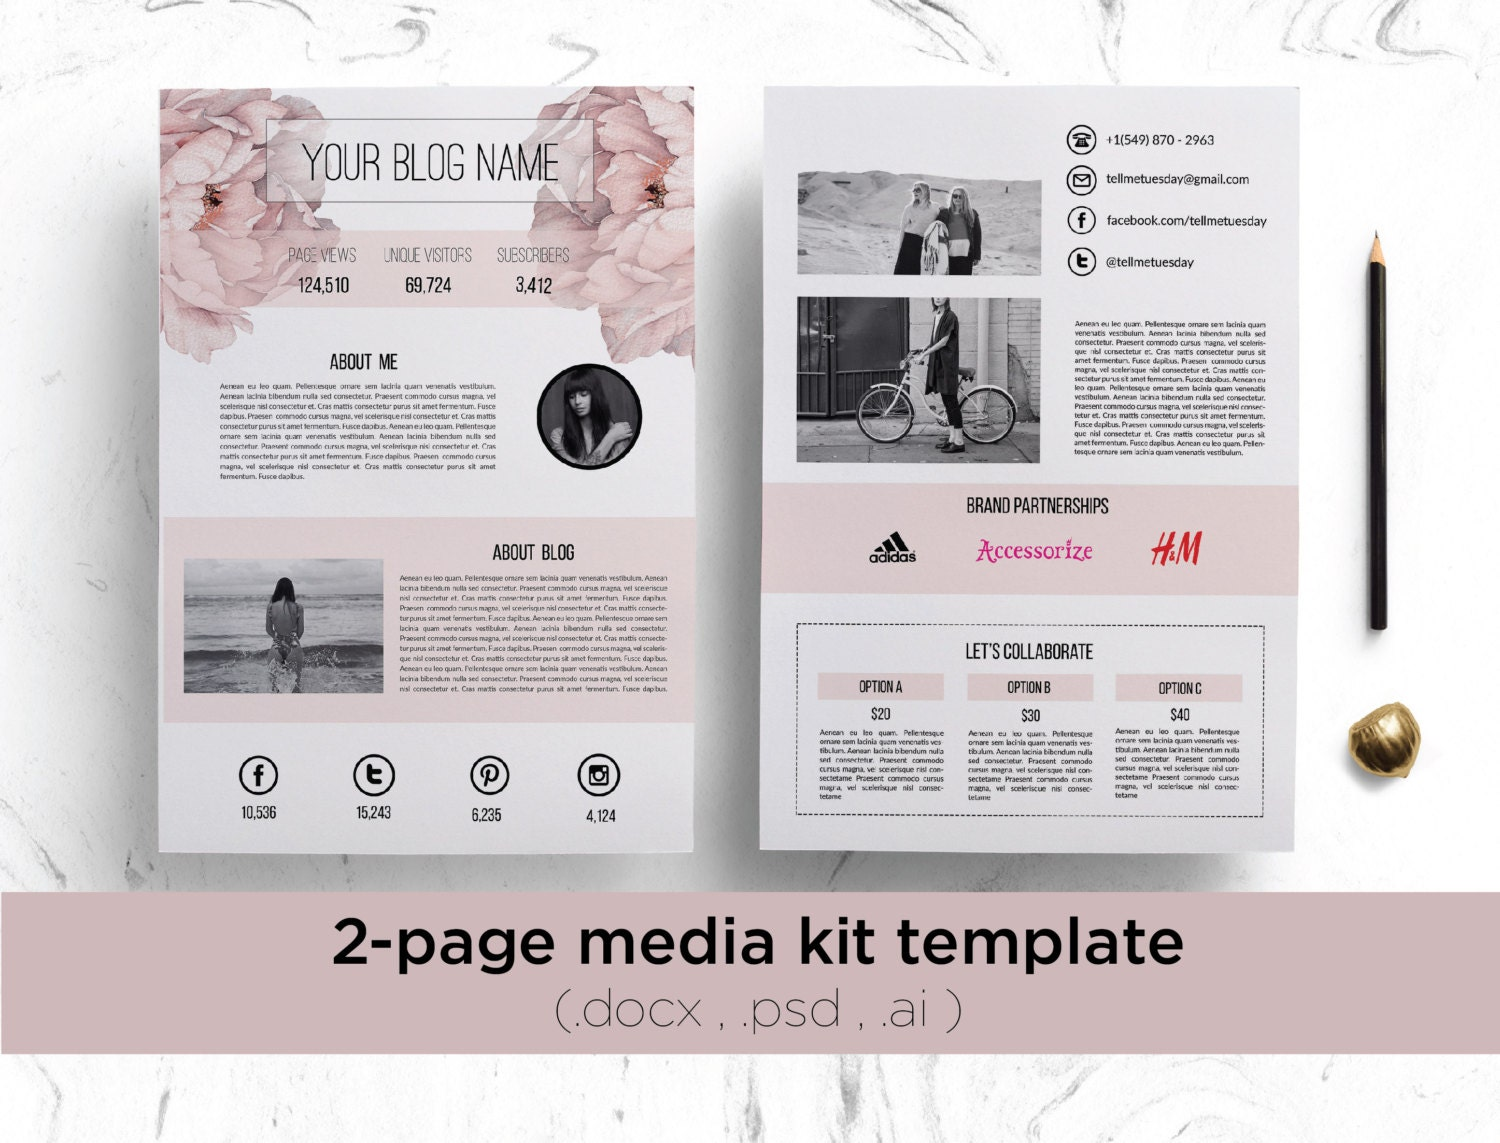 online media kit template - 2 page media kit template floral background elegant blog